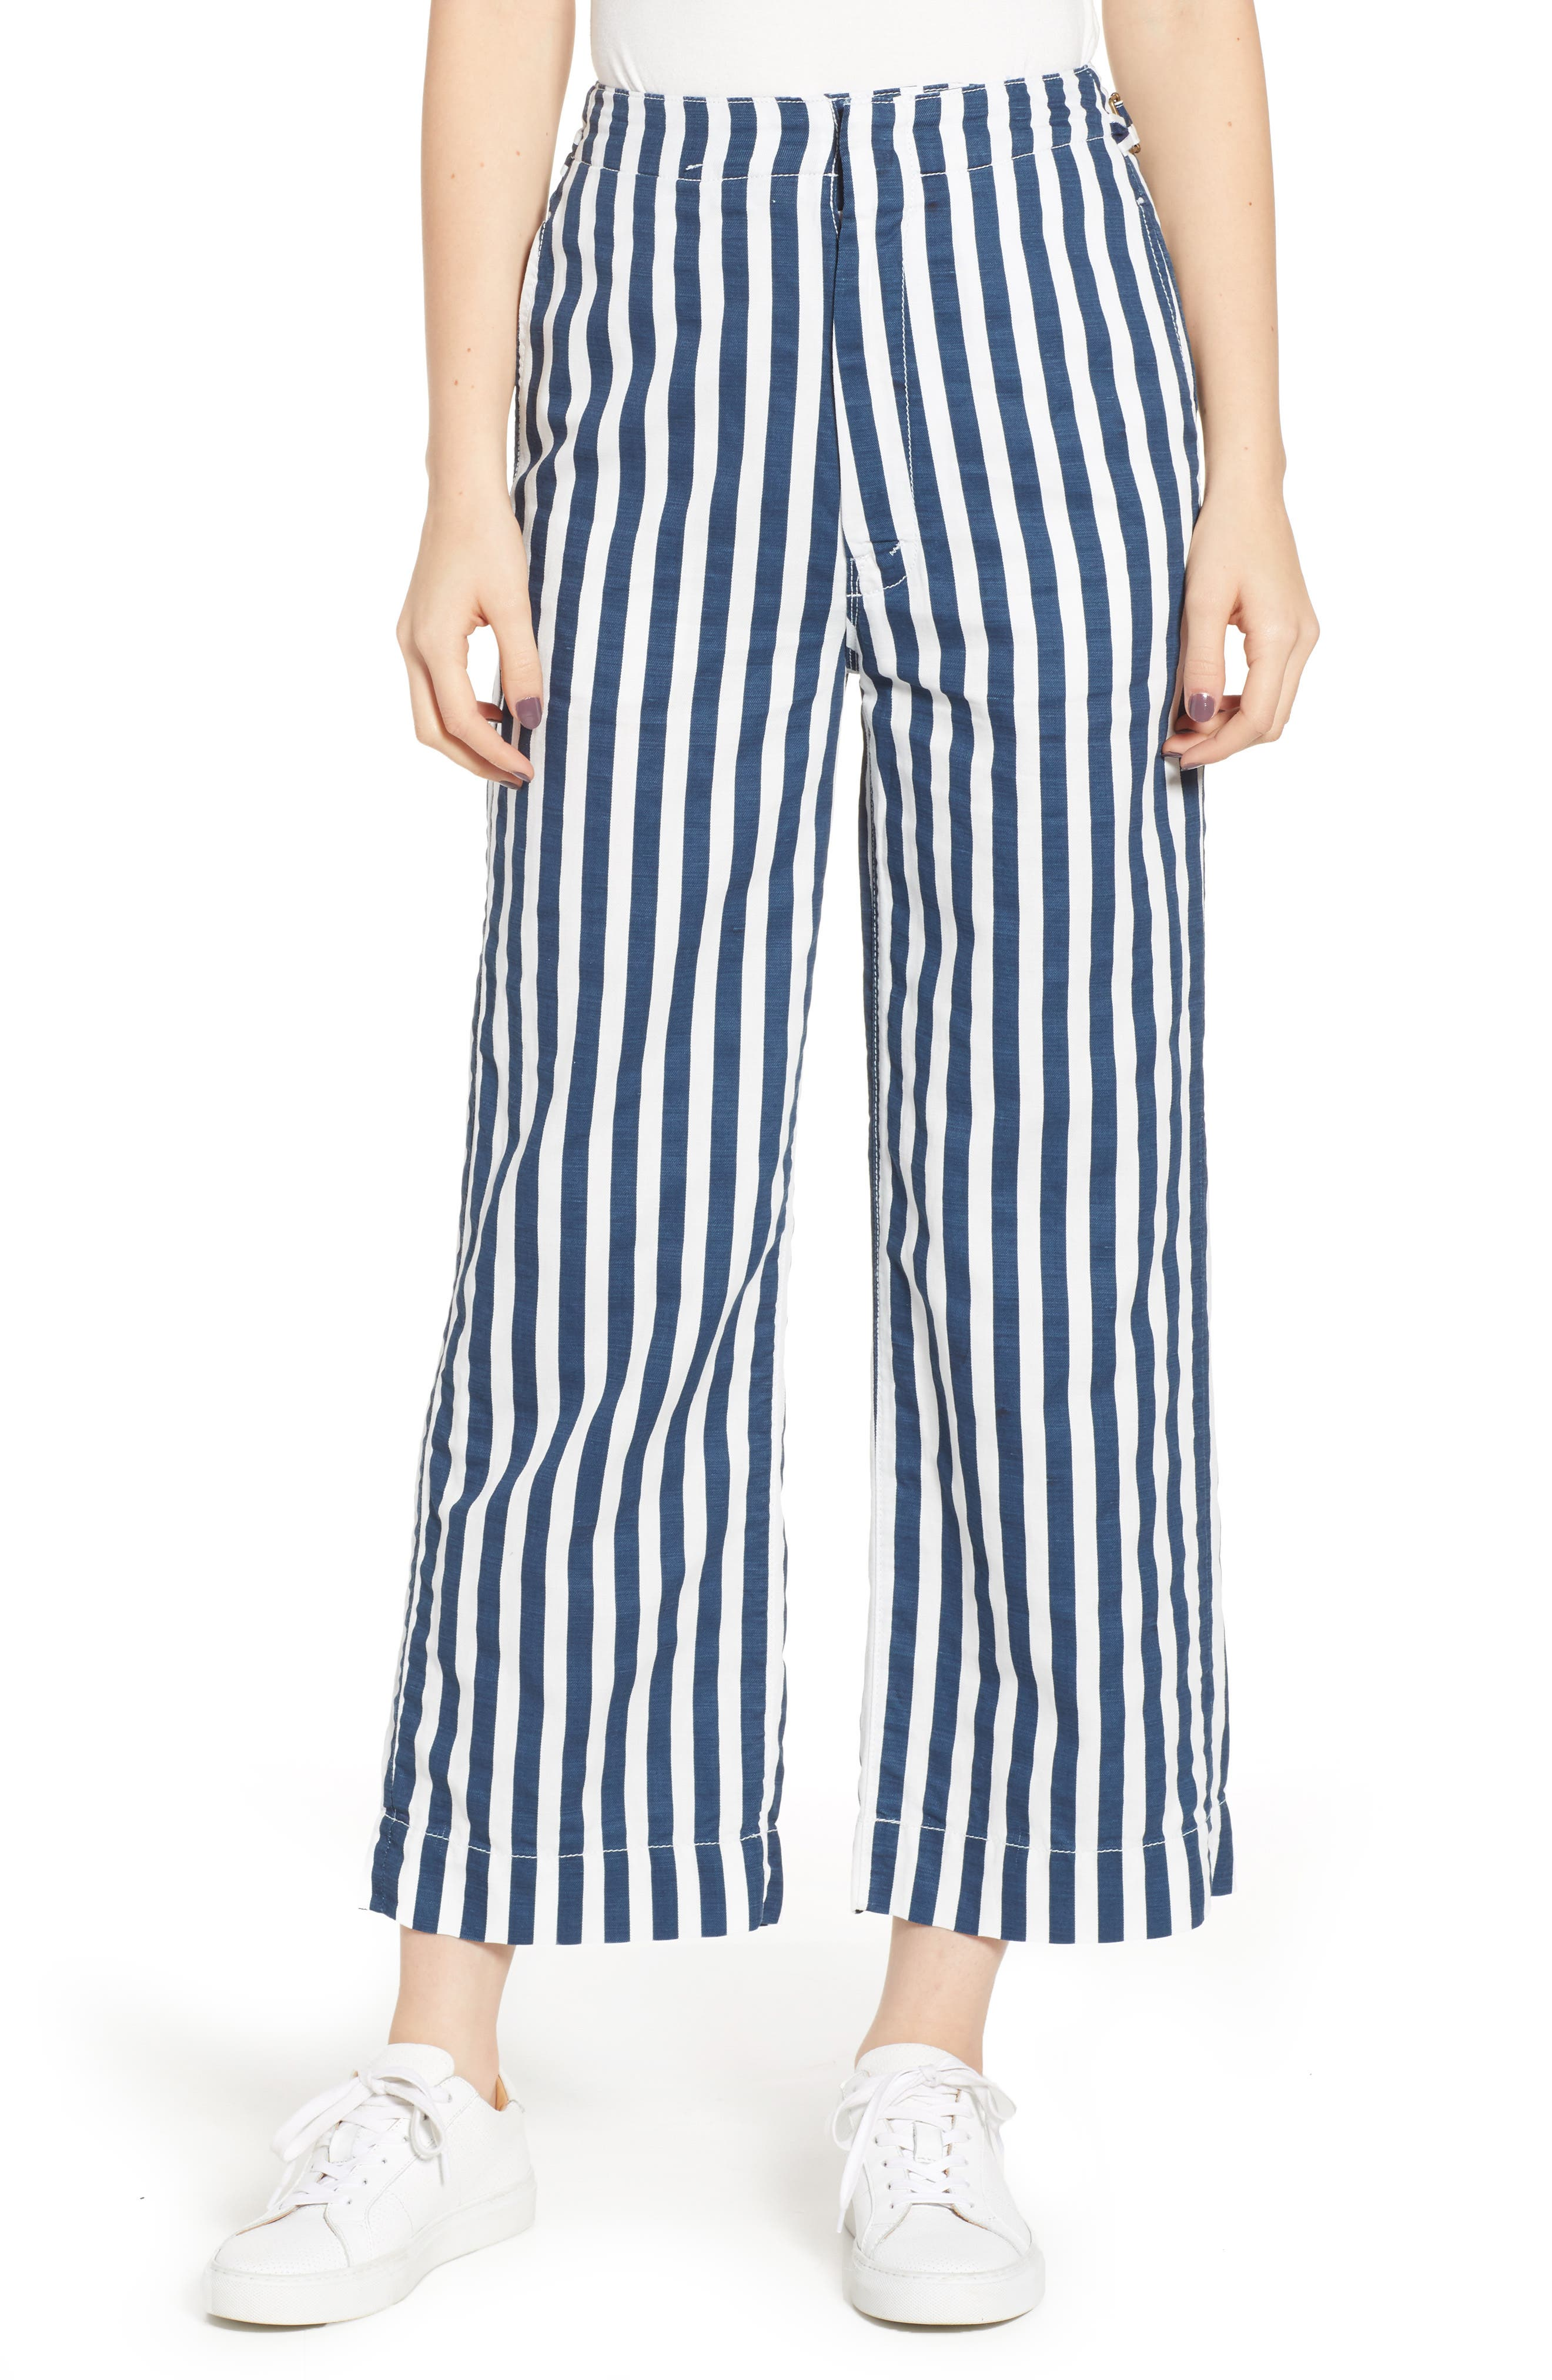 MOTHER, The Cinch Greaser Stripe Pants, Main thumbnail 1, color, 110